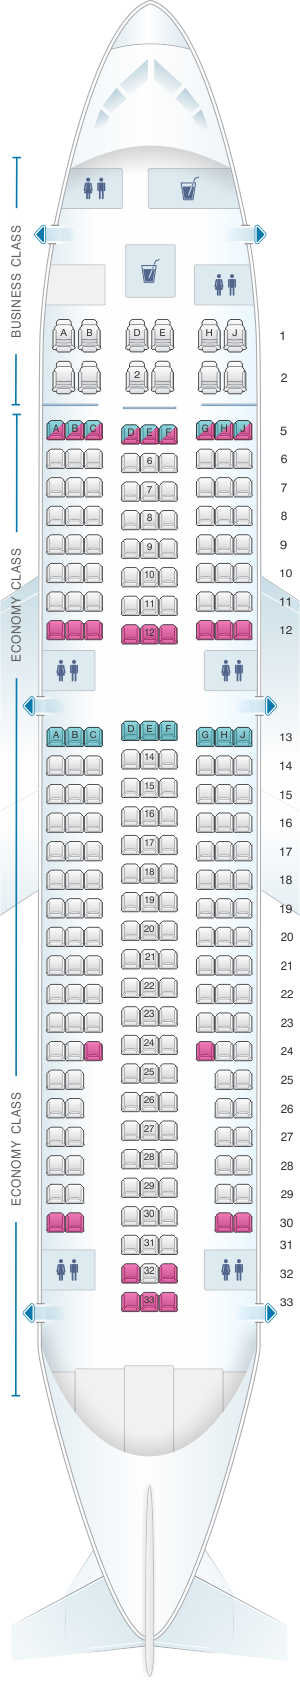 Seat map for White Airways Airbus A310